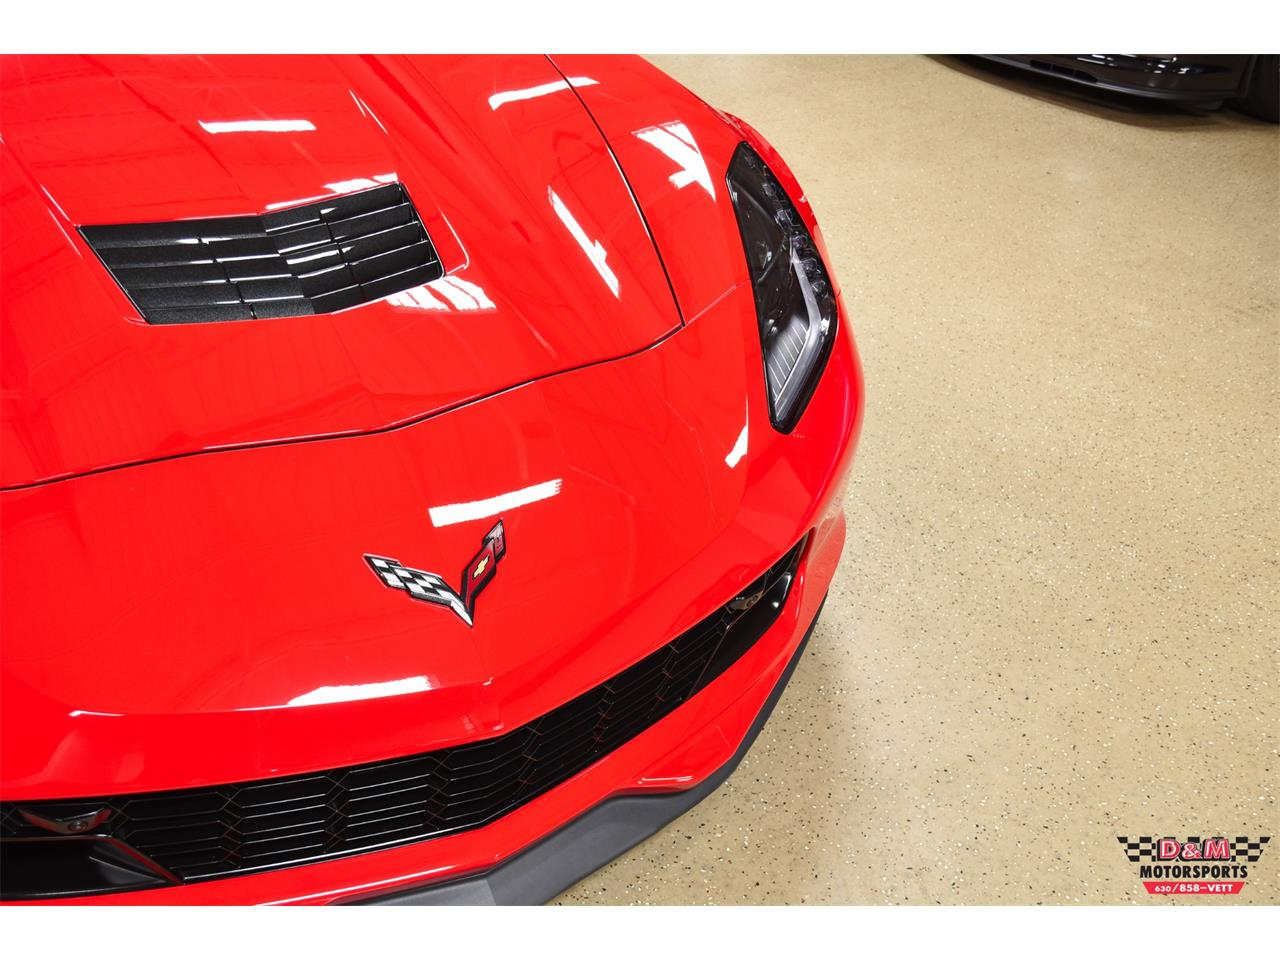 Large Picture of '18 Chevrolet Corvette located in Glen Ellyn Illinois - $61,995.00 - PWM3